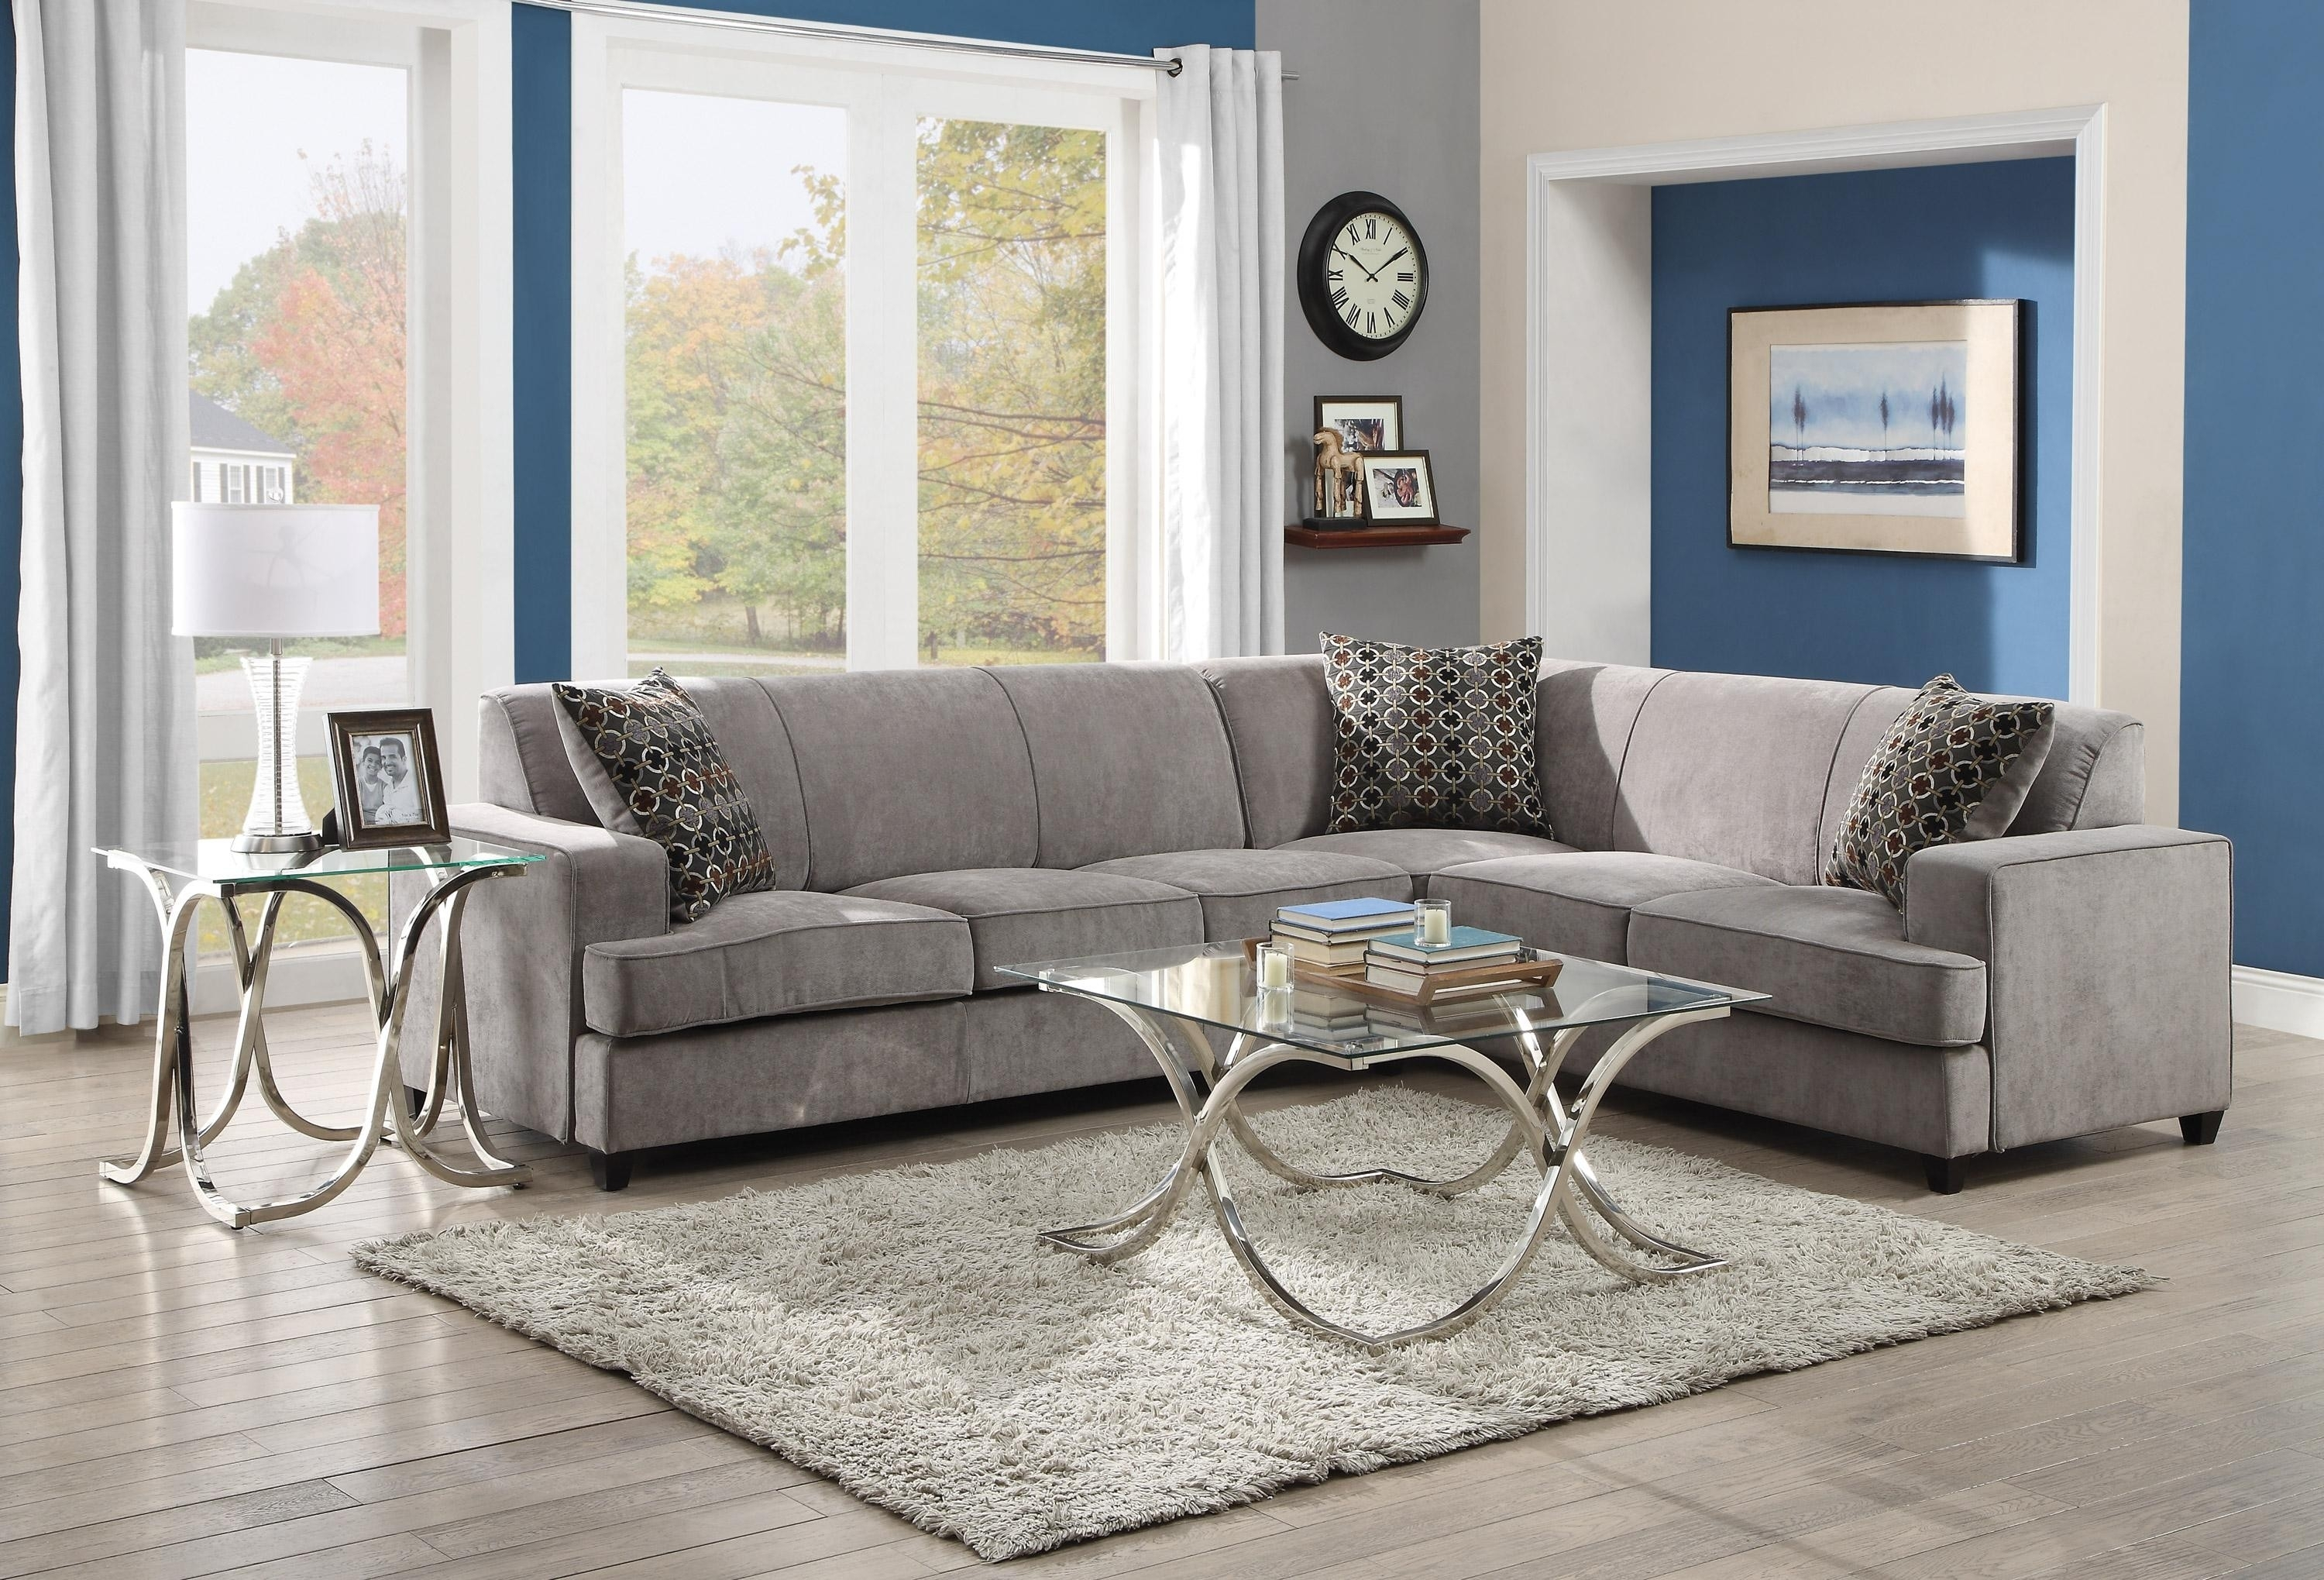 Fresh Light Grey Sectional Sofa 30 For Your Modern Sofa Ideas With within Light Grey Sectional Sofas (Image 5 of 10)